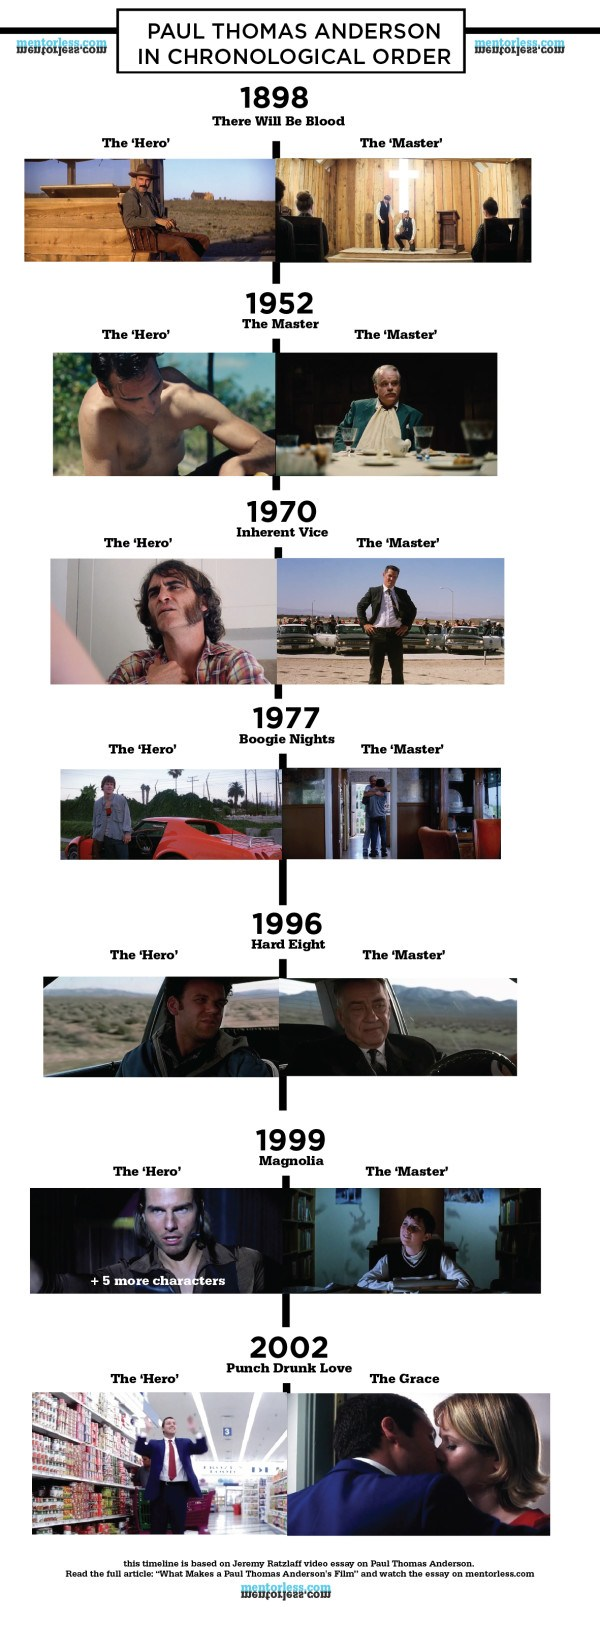 paul thomas anderson chronological flowchart